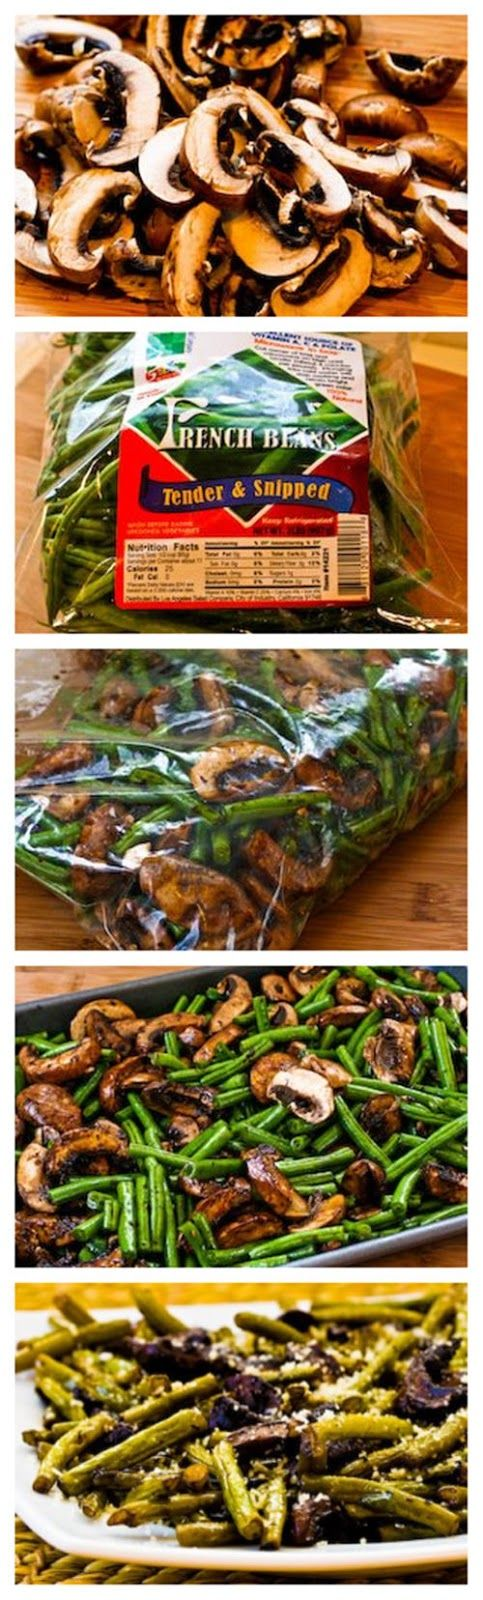 ... images: Roasted Green Beans with Mushrooms, Balsamic, and Parmesan